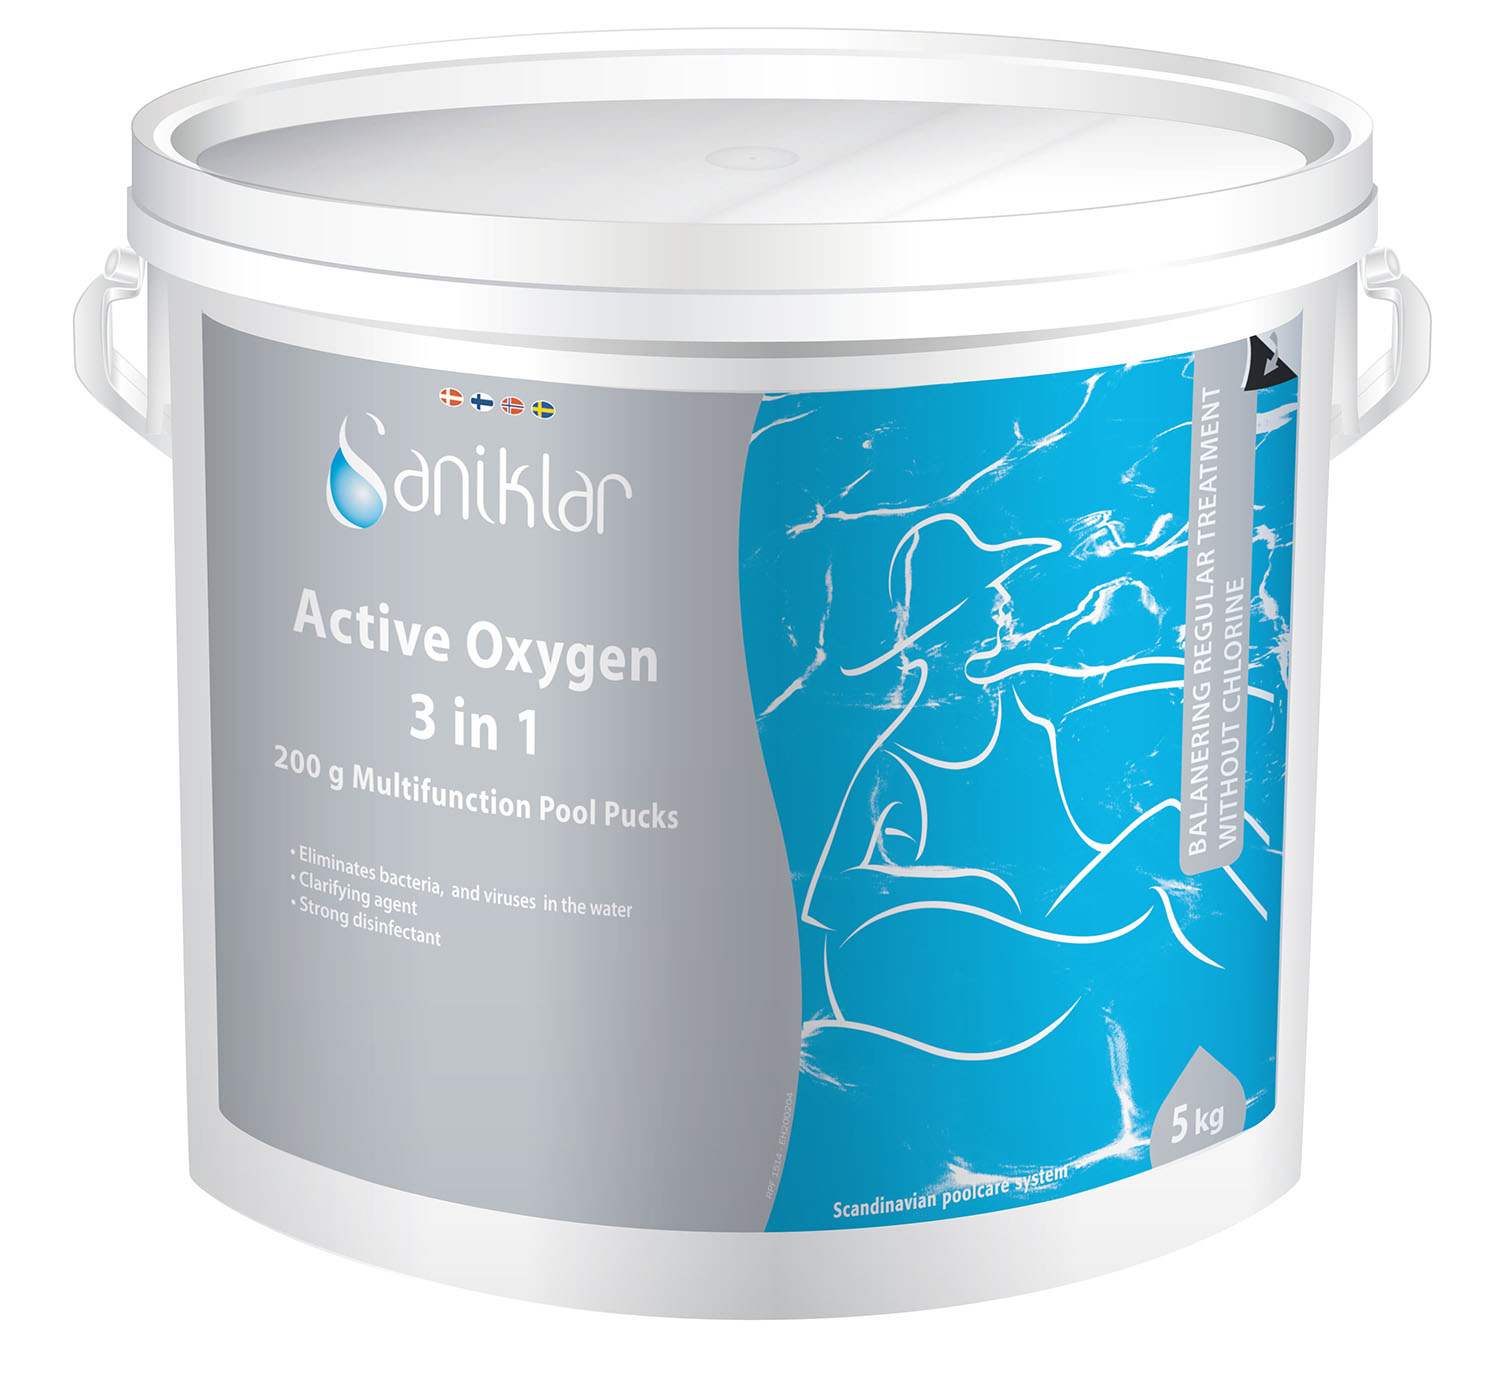 Saniklar Active Oxygen 3 in 1